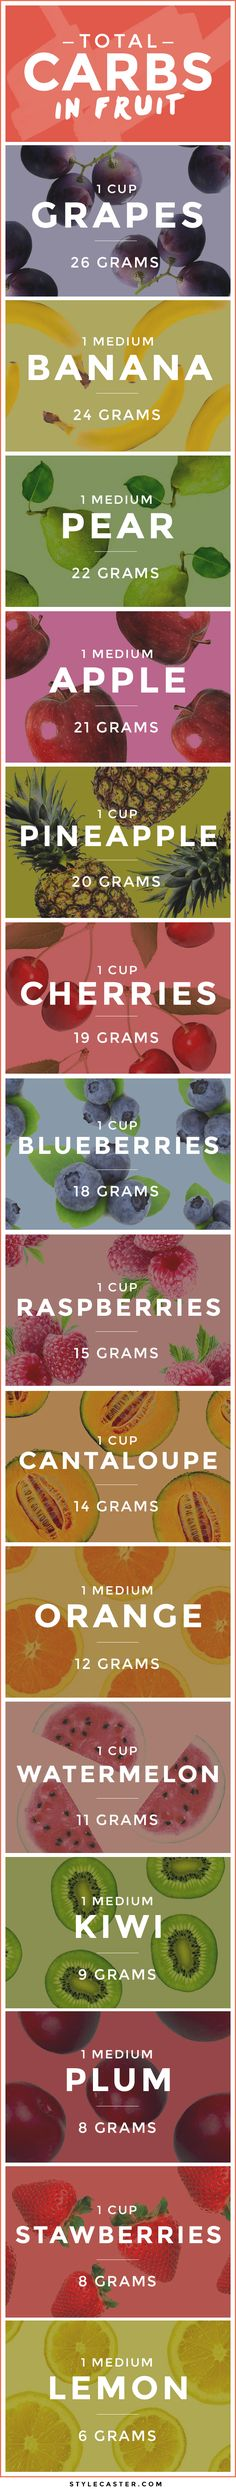 Low carb fruits // Check out our sliding scale of carbs in fruit!